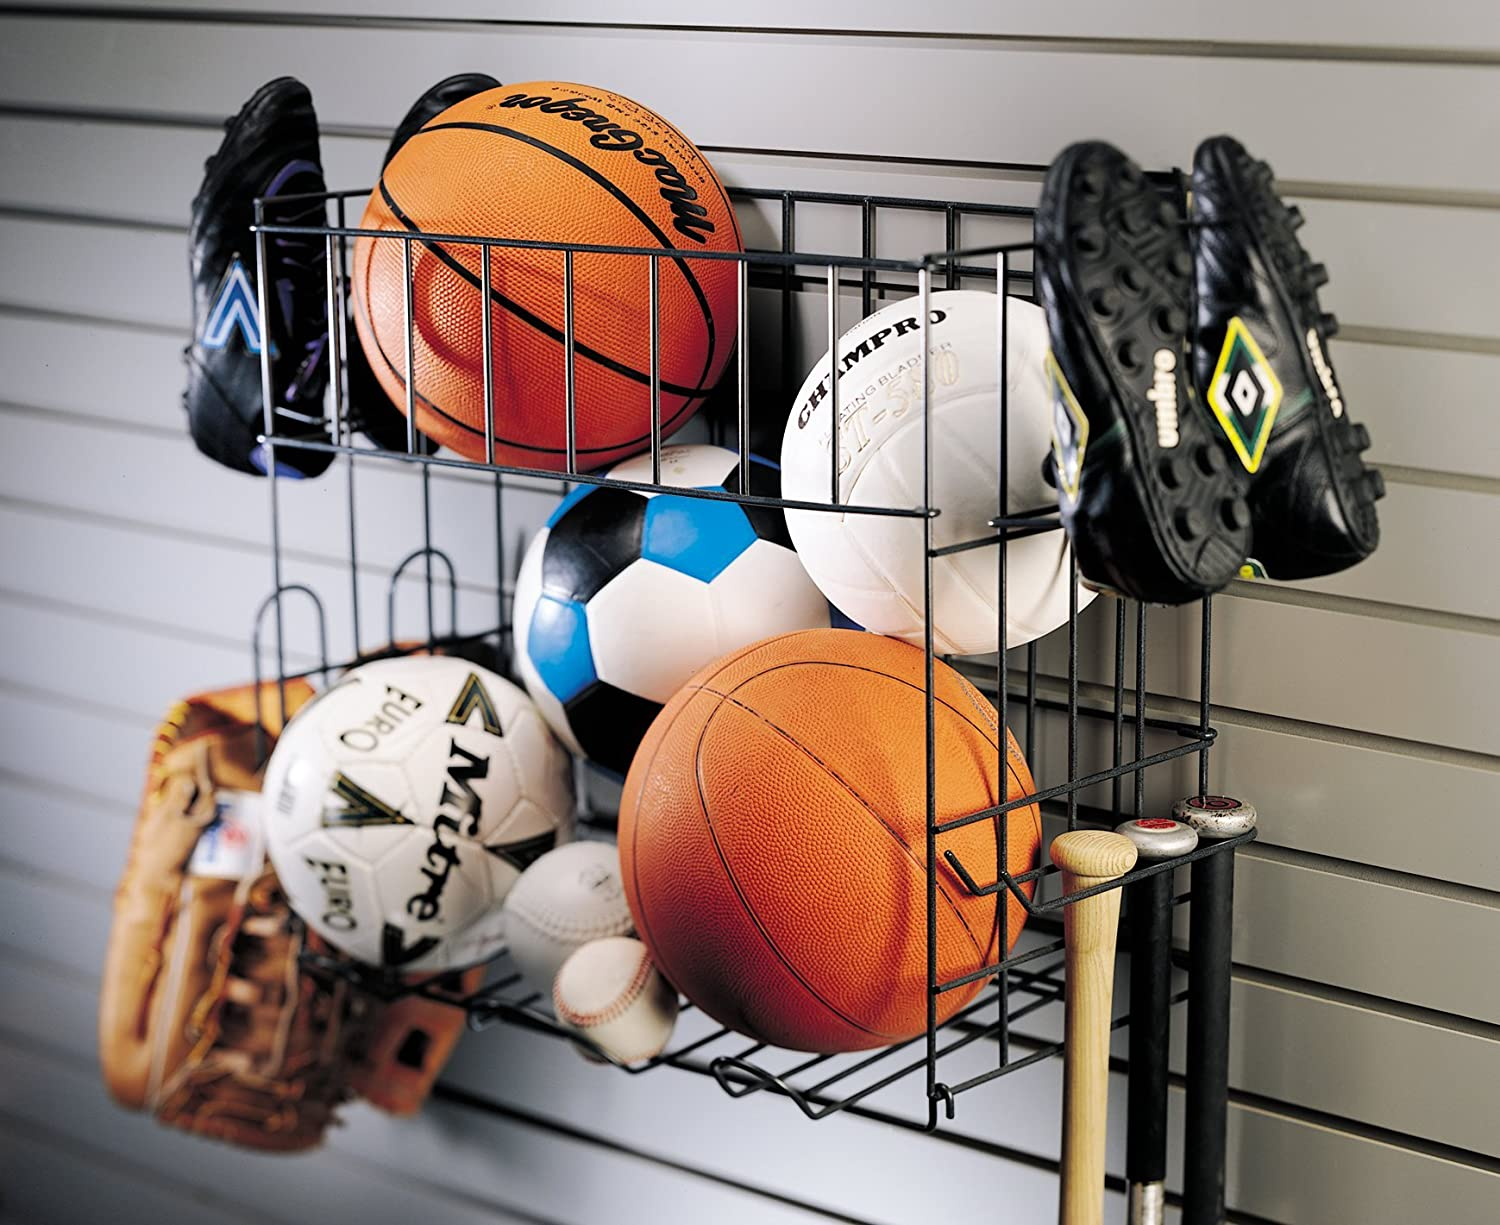 Organized Living Activity Organizer Sports Rack With Basket   Garage Storage  And Organization Systems   Amazon.com